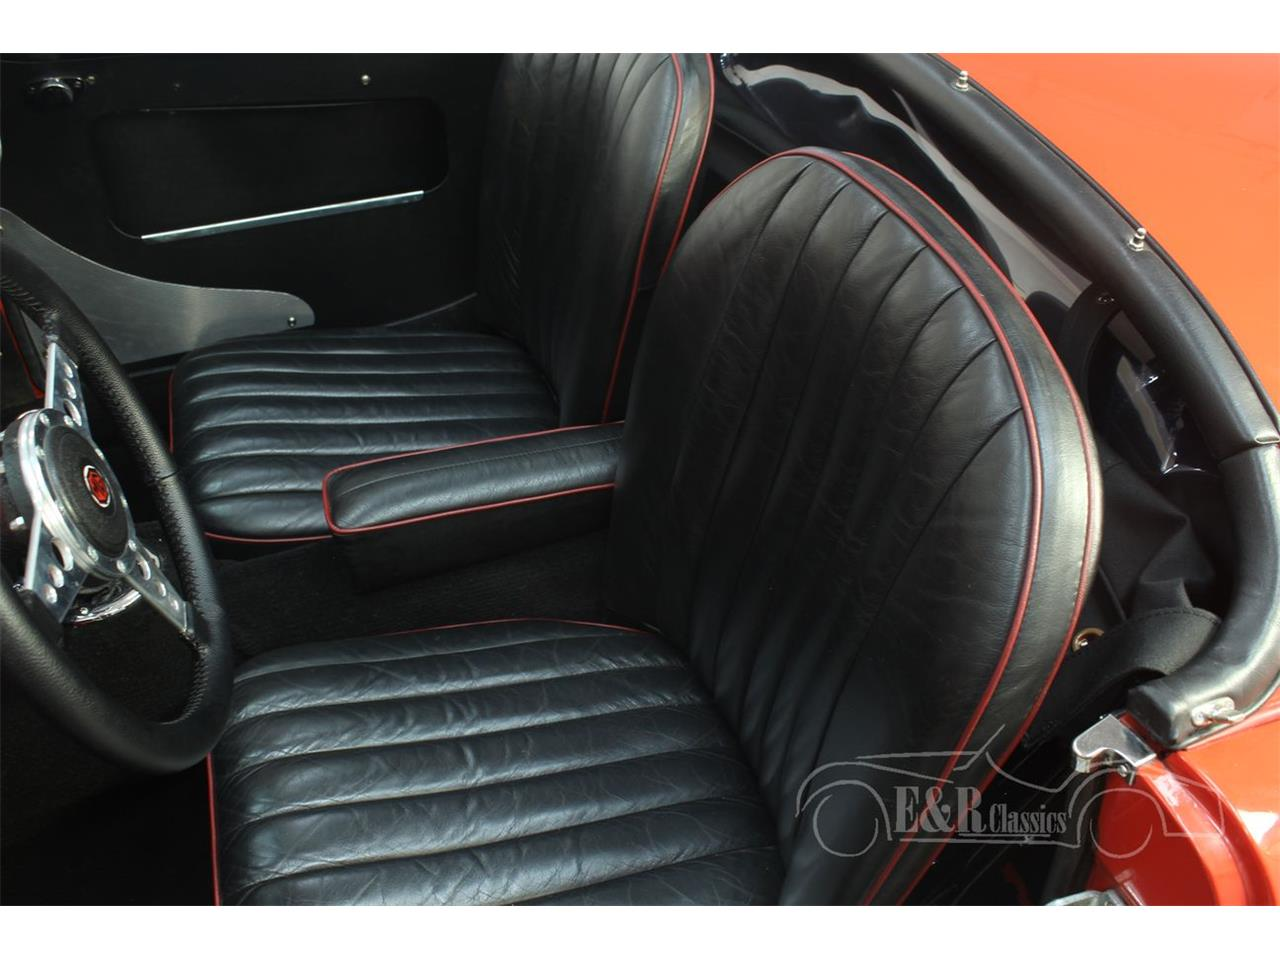 Large Picture of Classic '62 MG MGA located in Noord-Brabant - $45,000.00 Offered by E & R Classics - QKGO